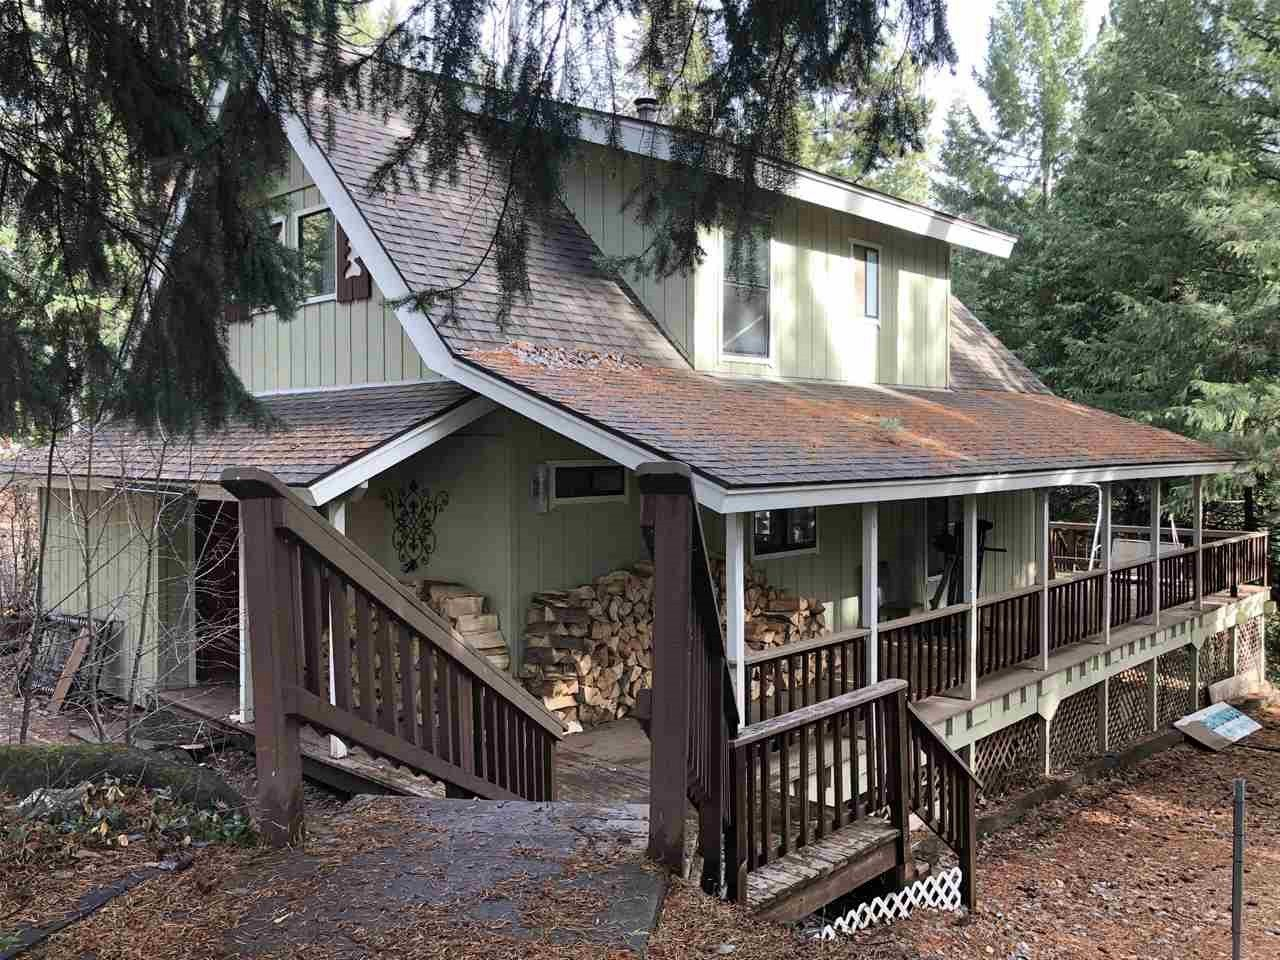 Single Family Homes for Active at 3881 Walker Memorial Road A-13 Lake Almanor, California 96137 United States